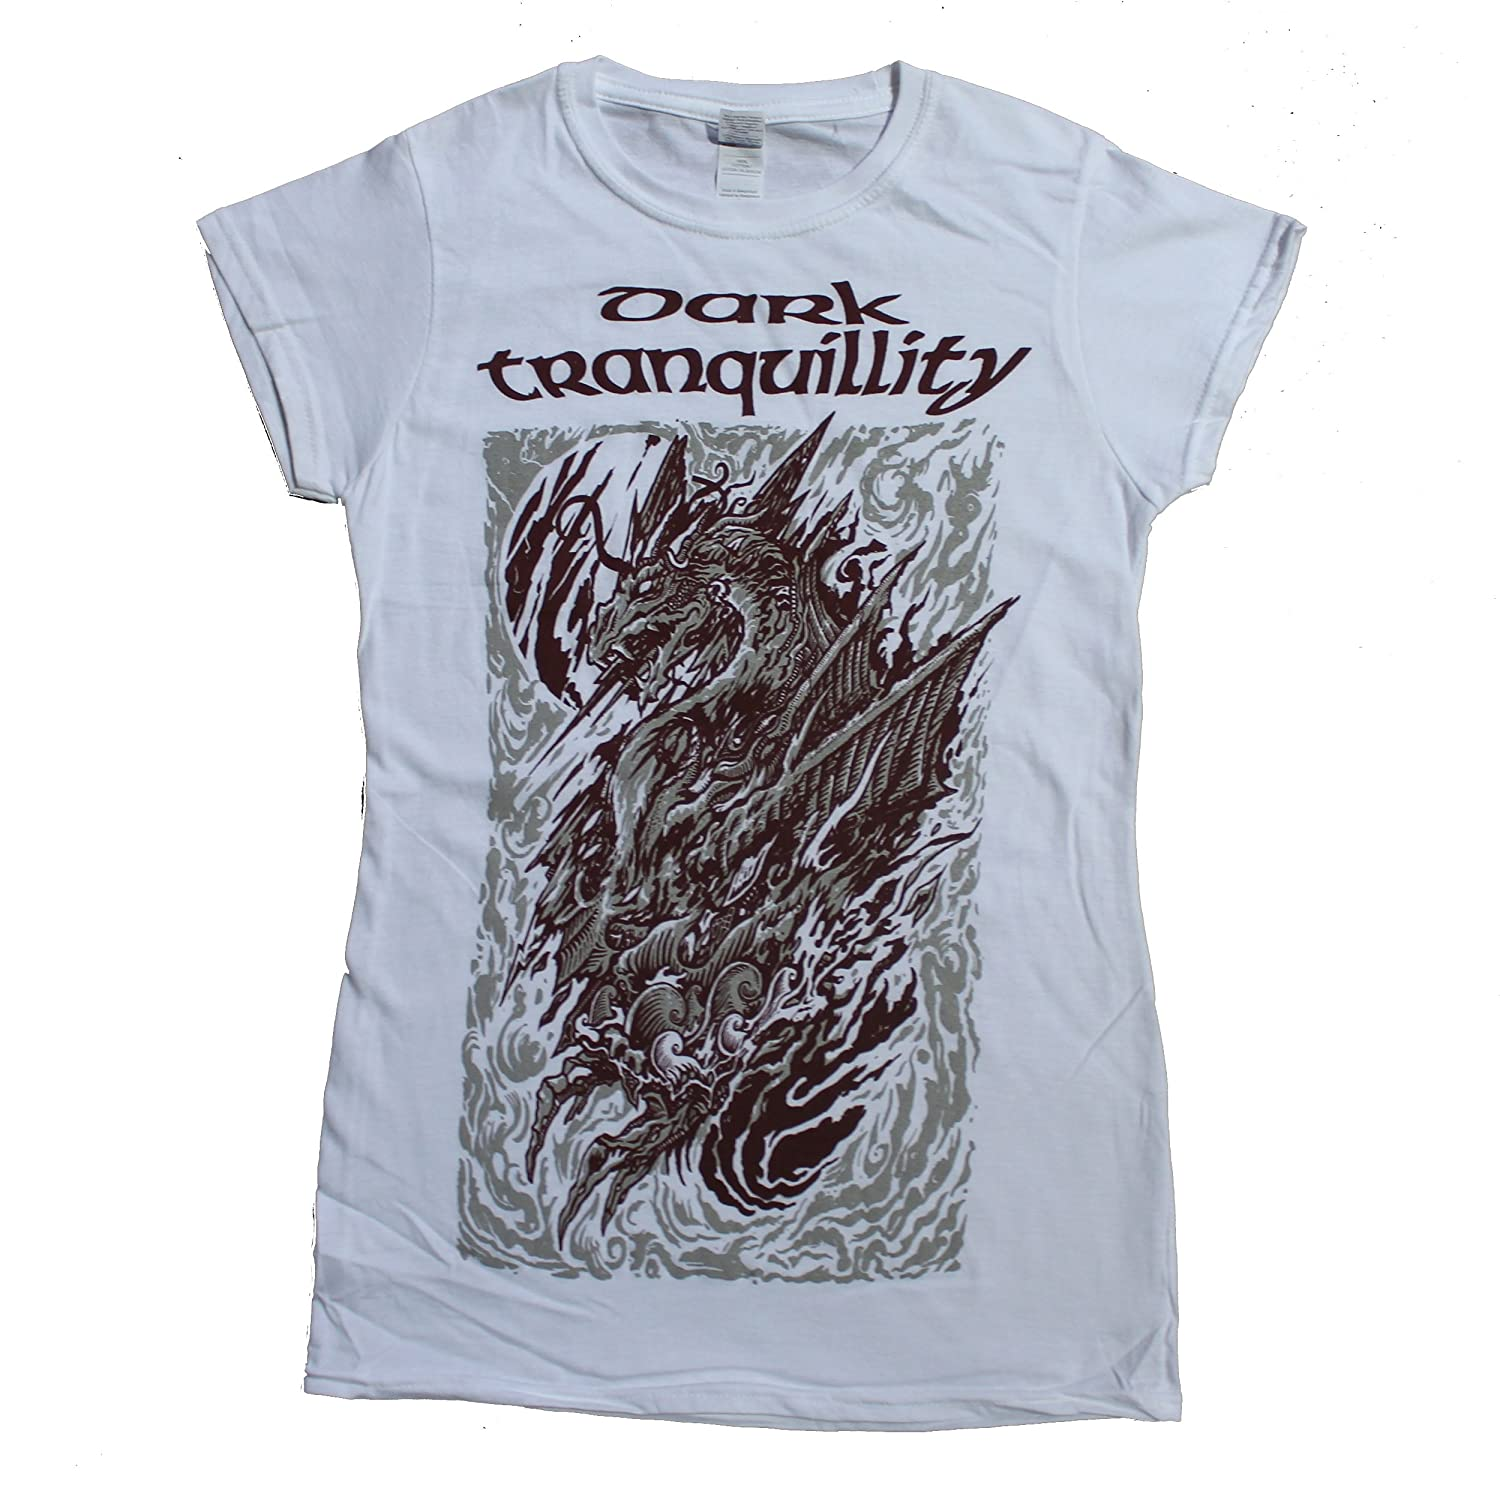 Dark Tranquillity Girlie Frauen T-Shirt, Dragon